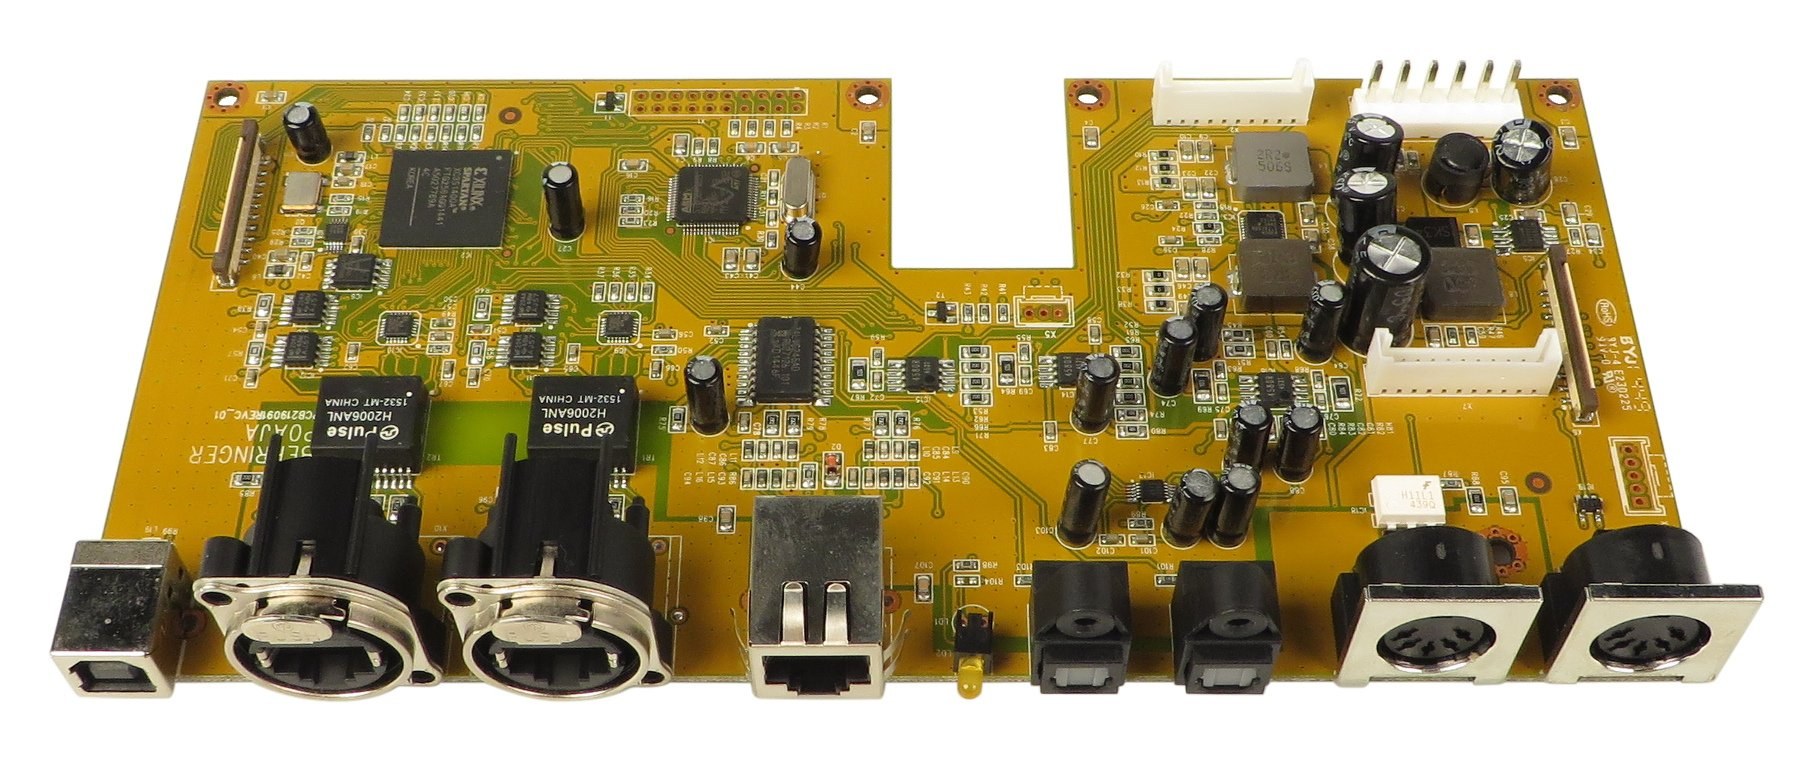 Main PCB for S16